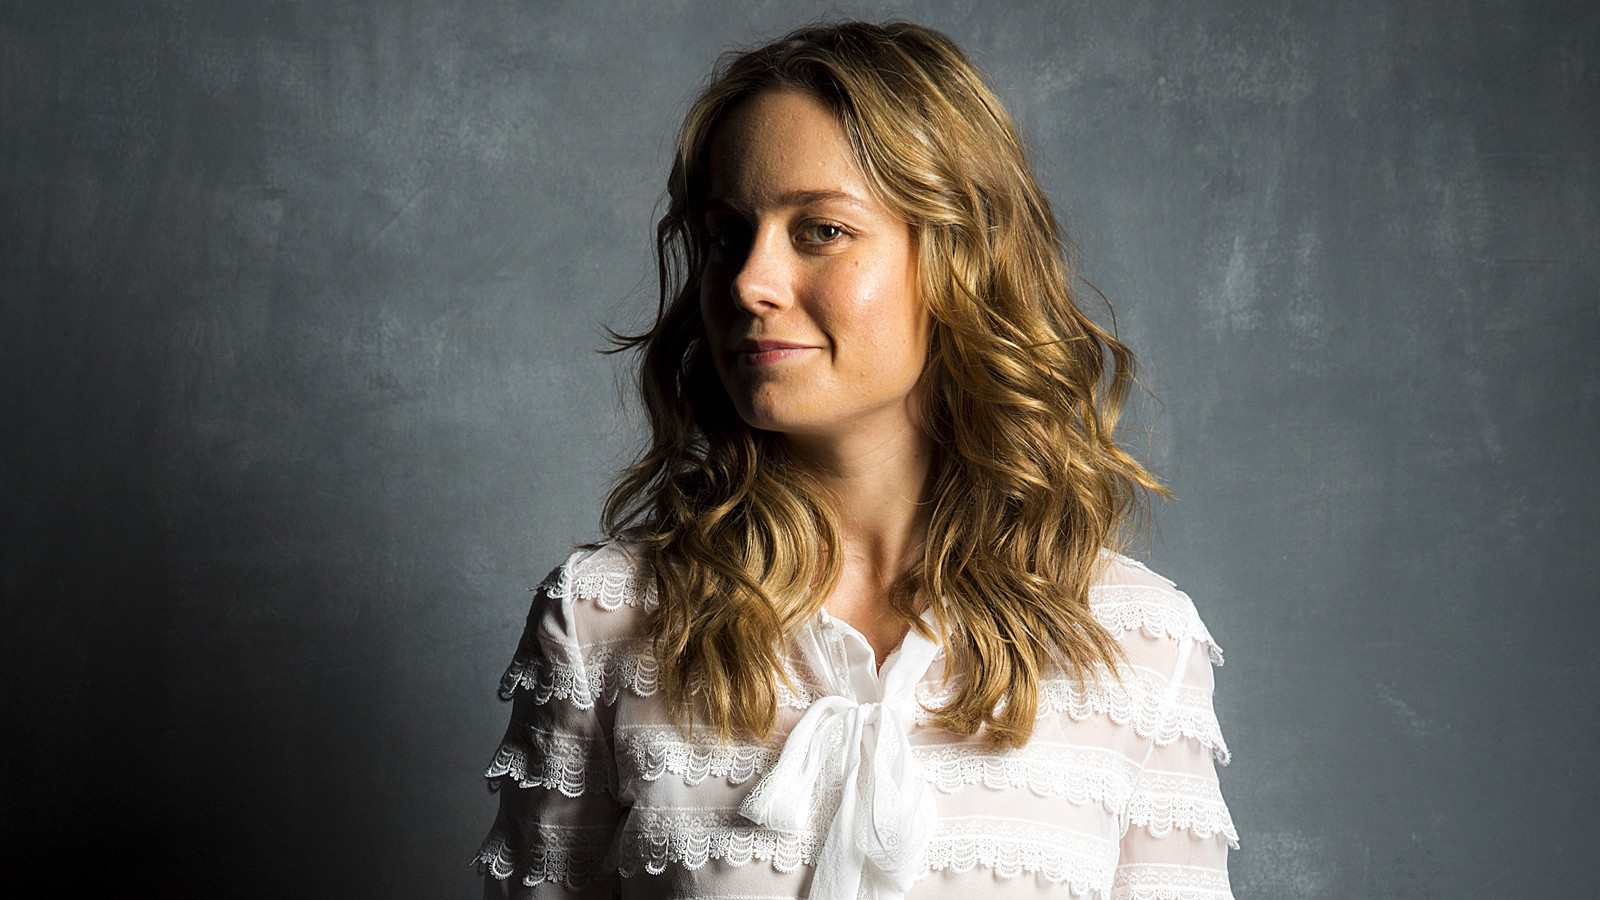 39 room 39 s 39 brie larson says 39 it 39 s not gonna look pretty 39 but it will be real la times. Black Bedroom Furniture Sets. Home Design Ideas